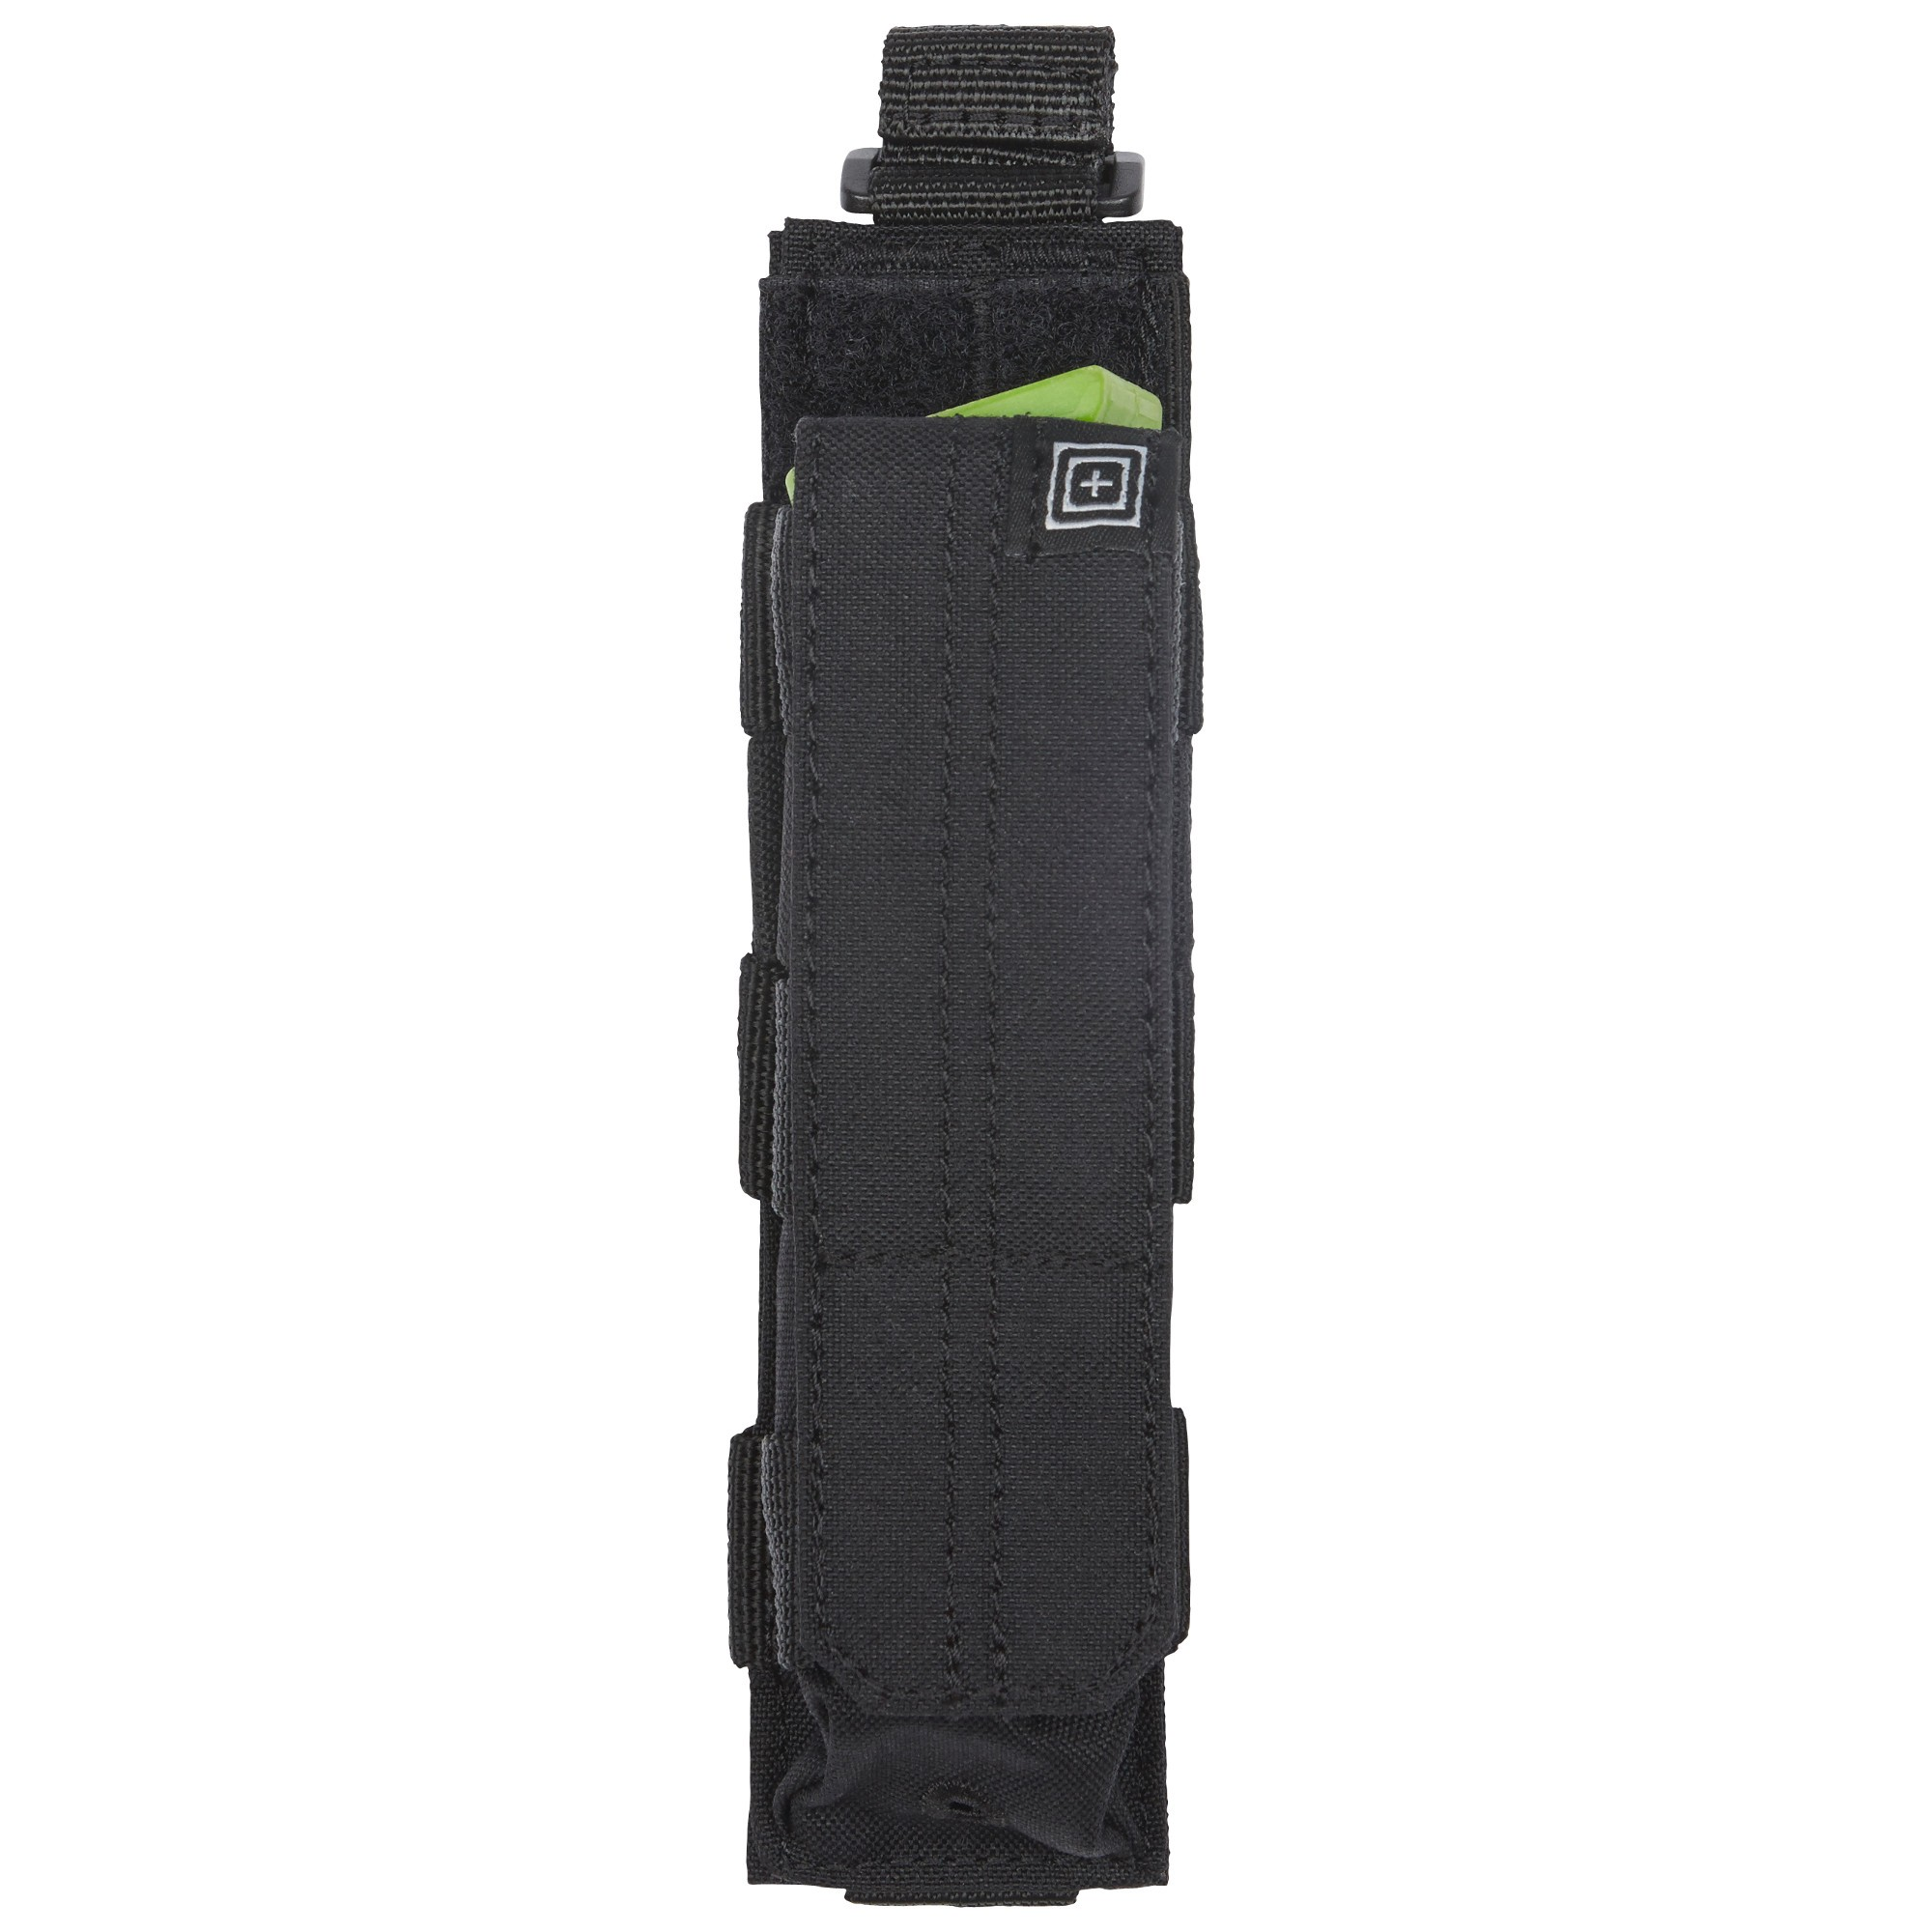 5.11 MP5 Bungee/Cover - Single